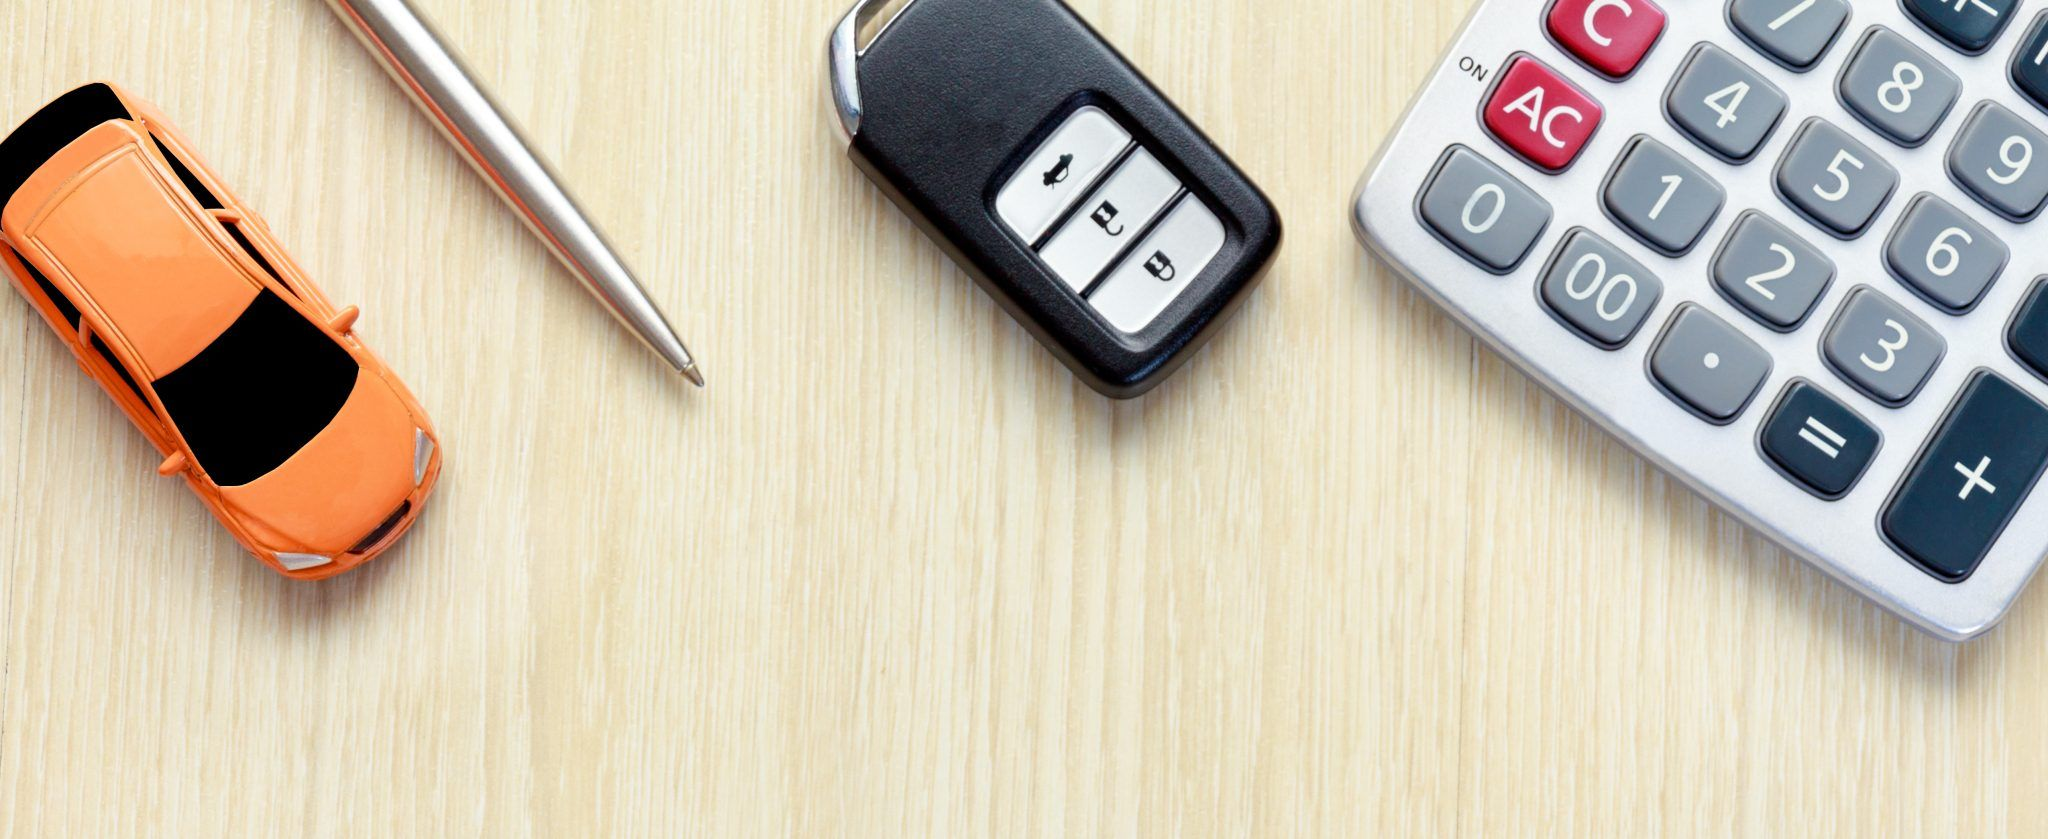 Overhead view of toy car, pen, key fob and calculator